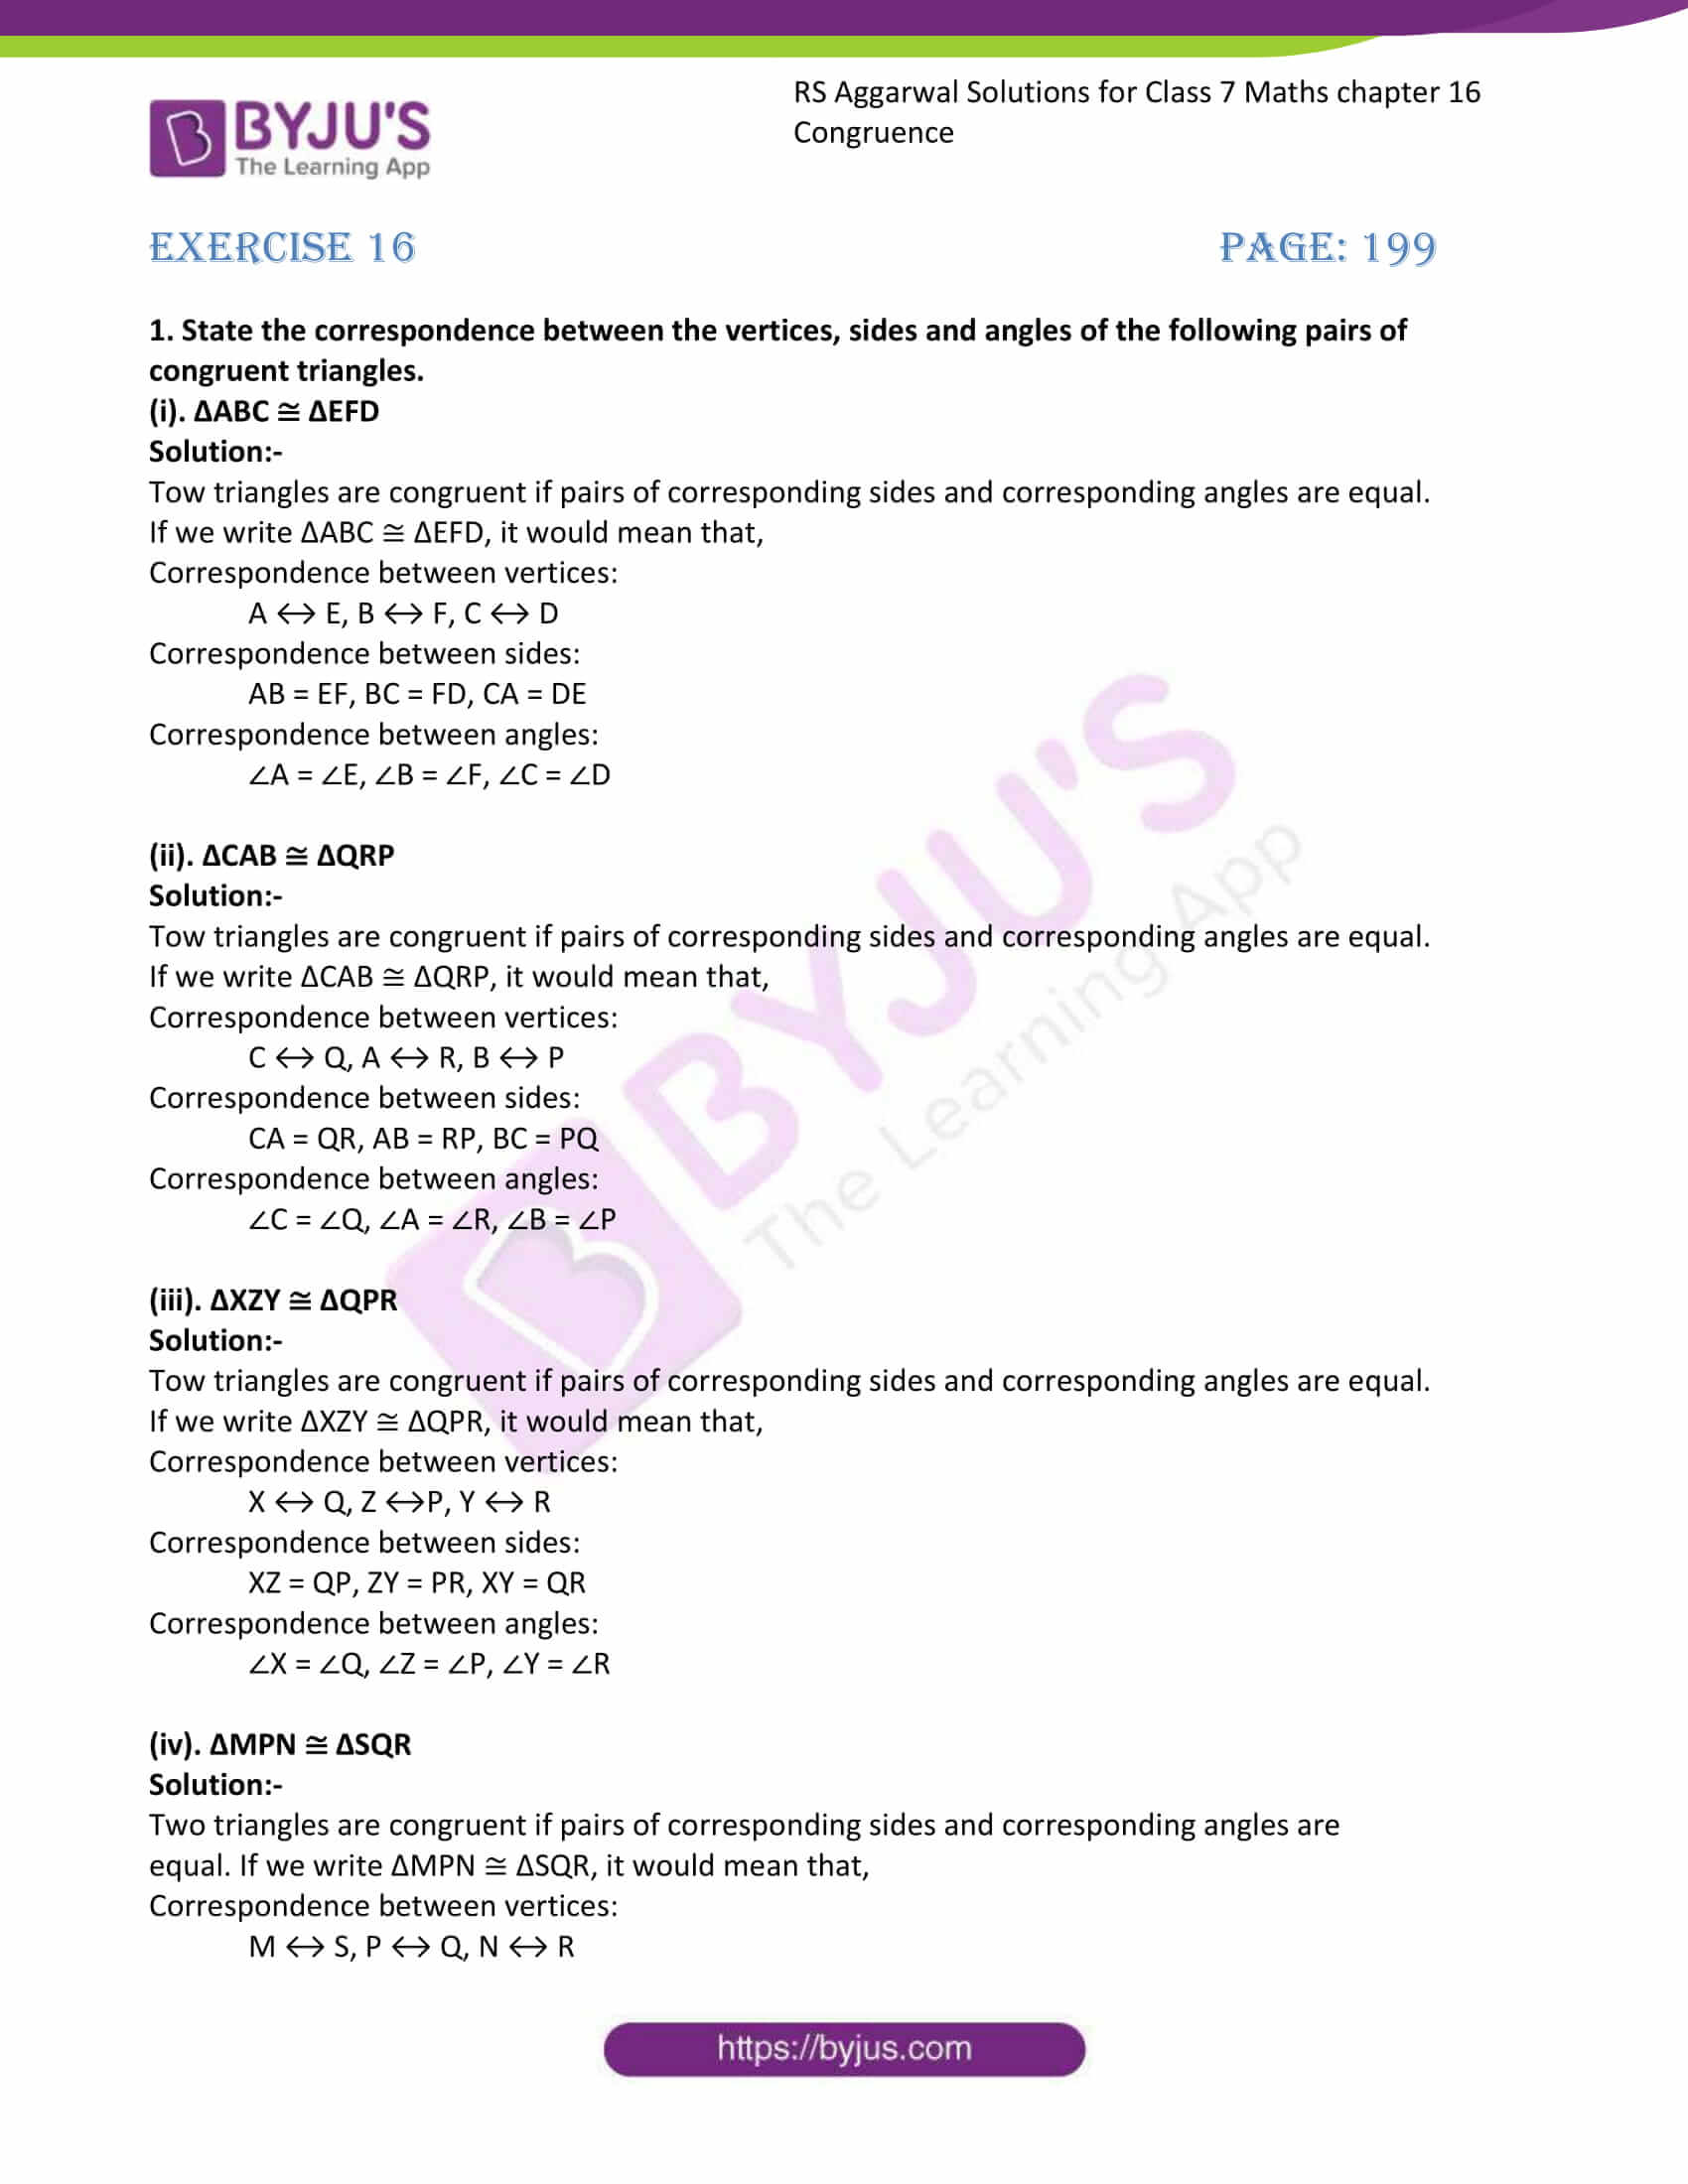 RS Aggarwal Solutions Class 7 Maths Chapter 16 Congruence 1